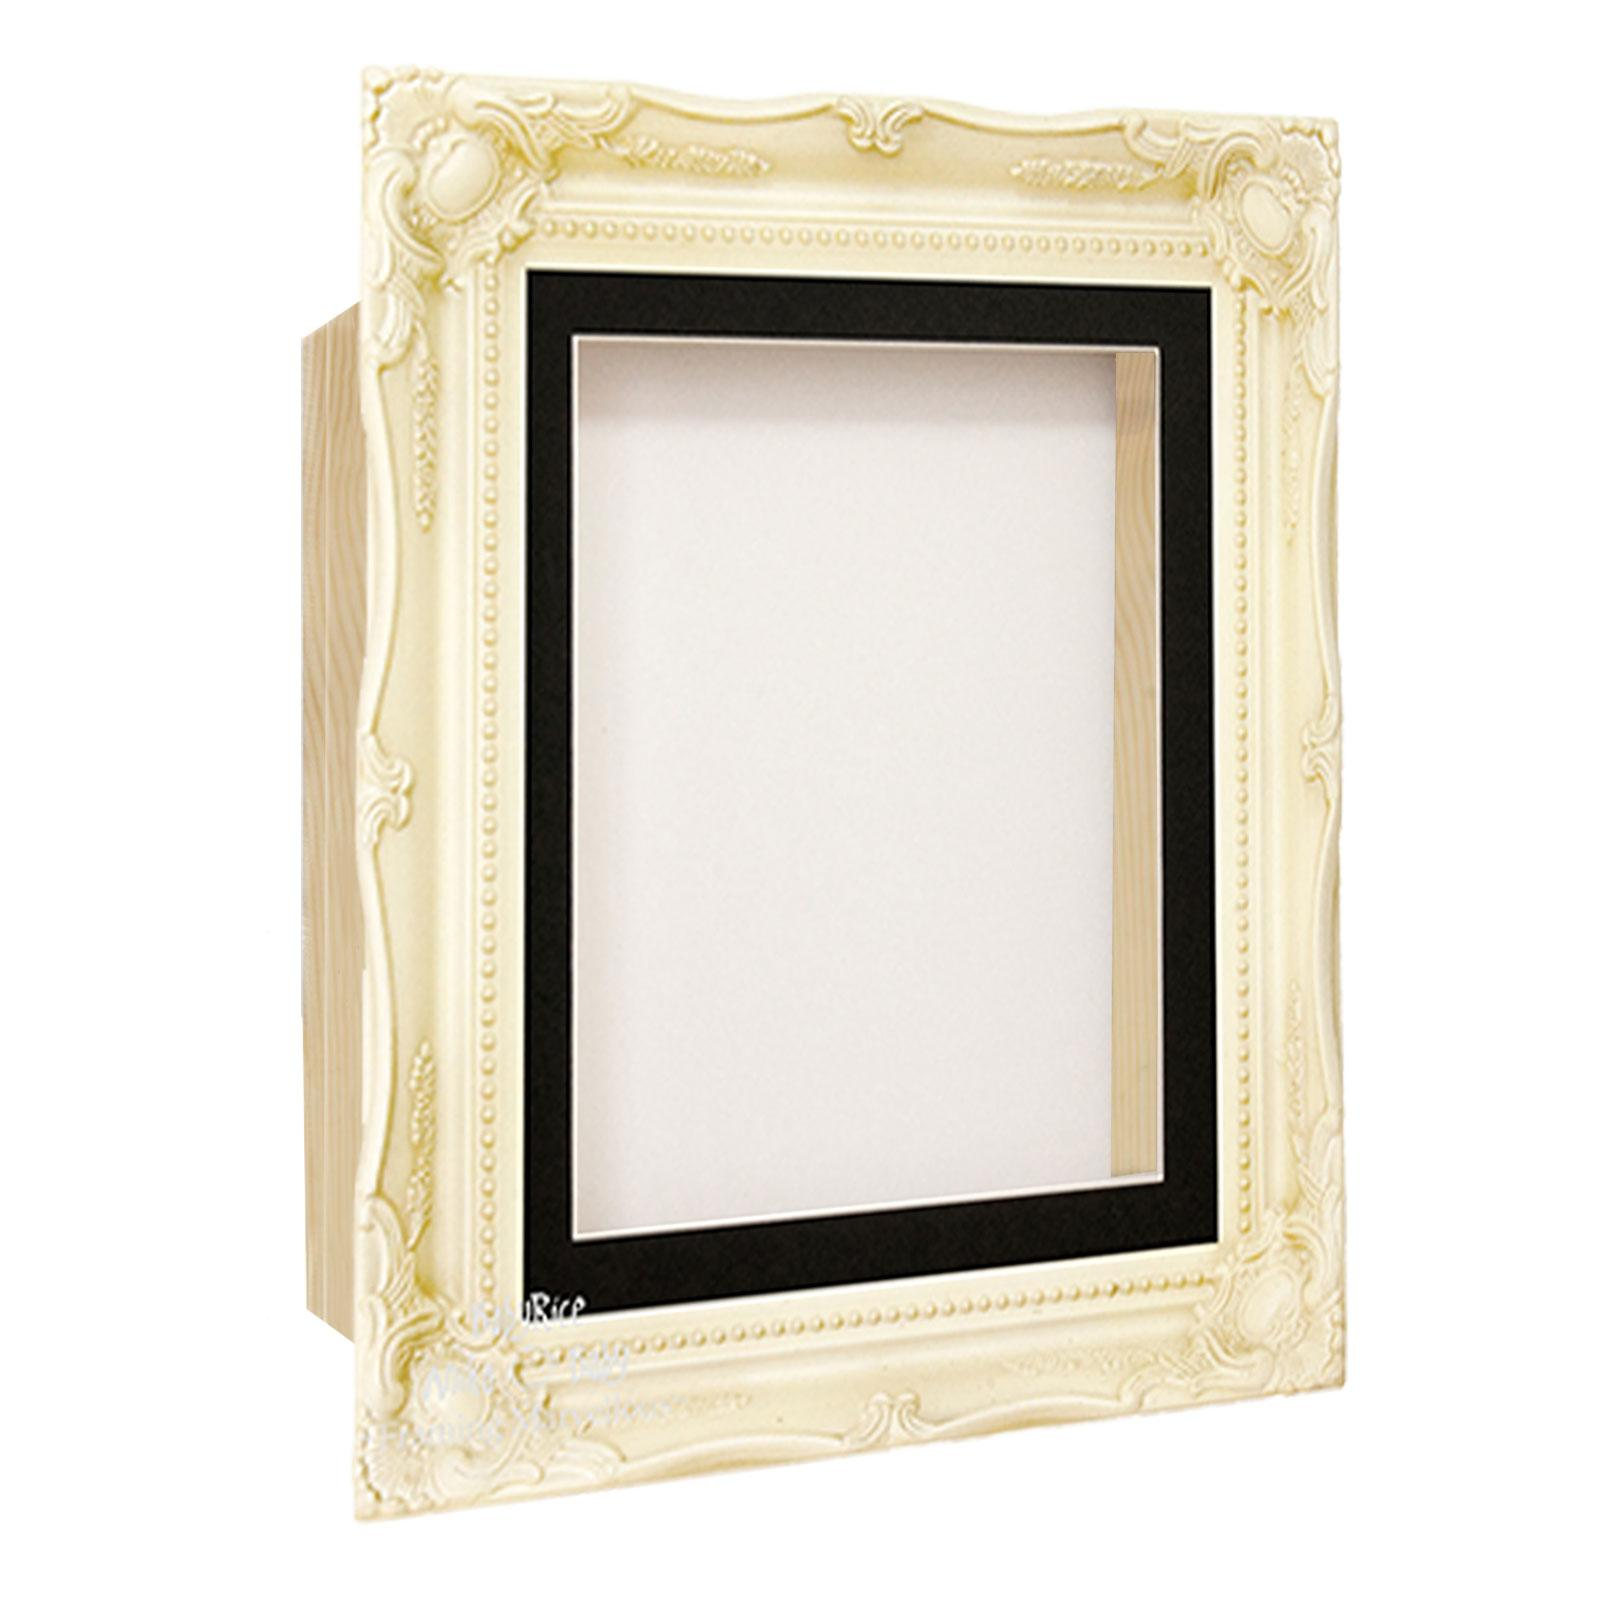 Cream Ornate Deep Box Display Frame